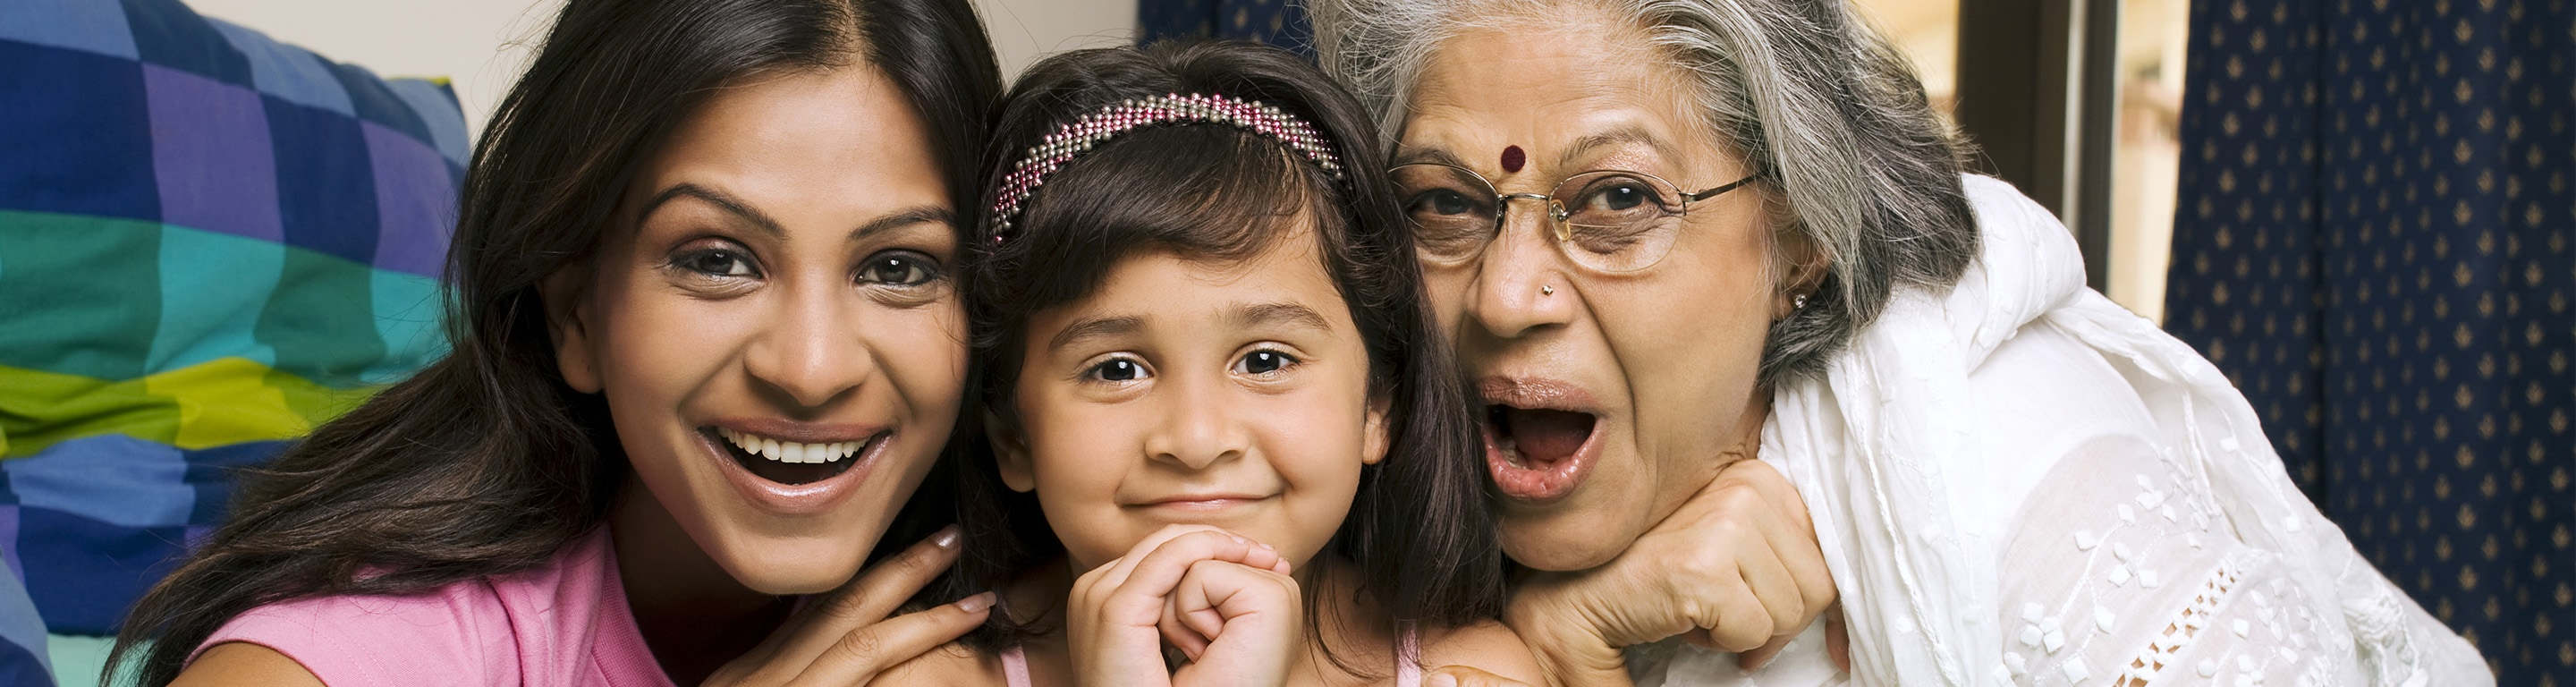 3 generations of women smiling - genetic screening - Axia Women's Health